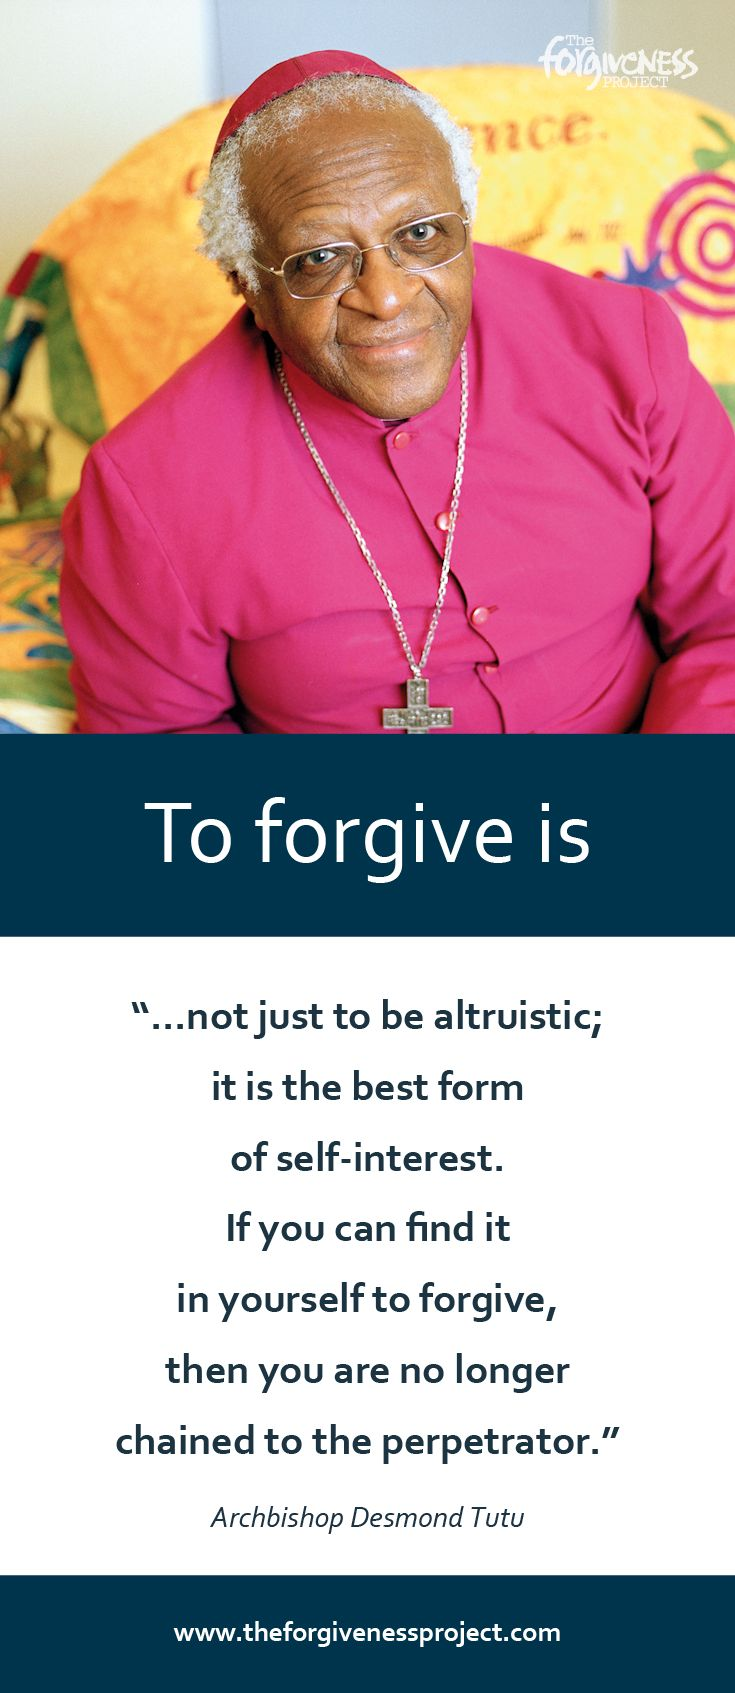 """""""To forgive is not just to be altruistic. It is the best form of self-interest. If you can find it in yourself to forgive then you are no longer chained to the perpetrator."""" - Archbishop Desmond Tutu. http://theforgivenessproject.com/stories/desmond-tutu-south-africa/"""